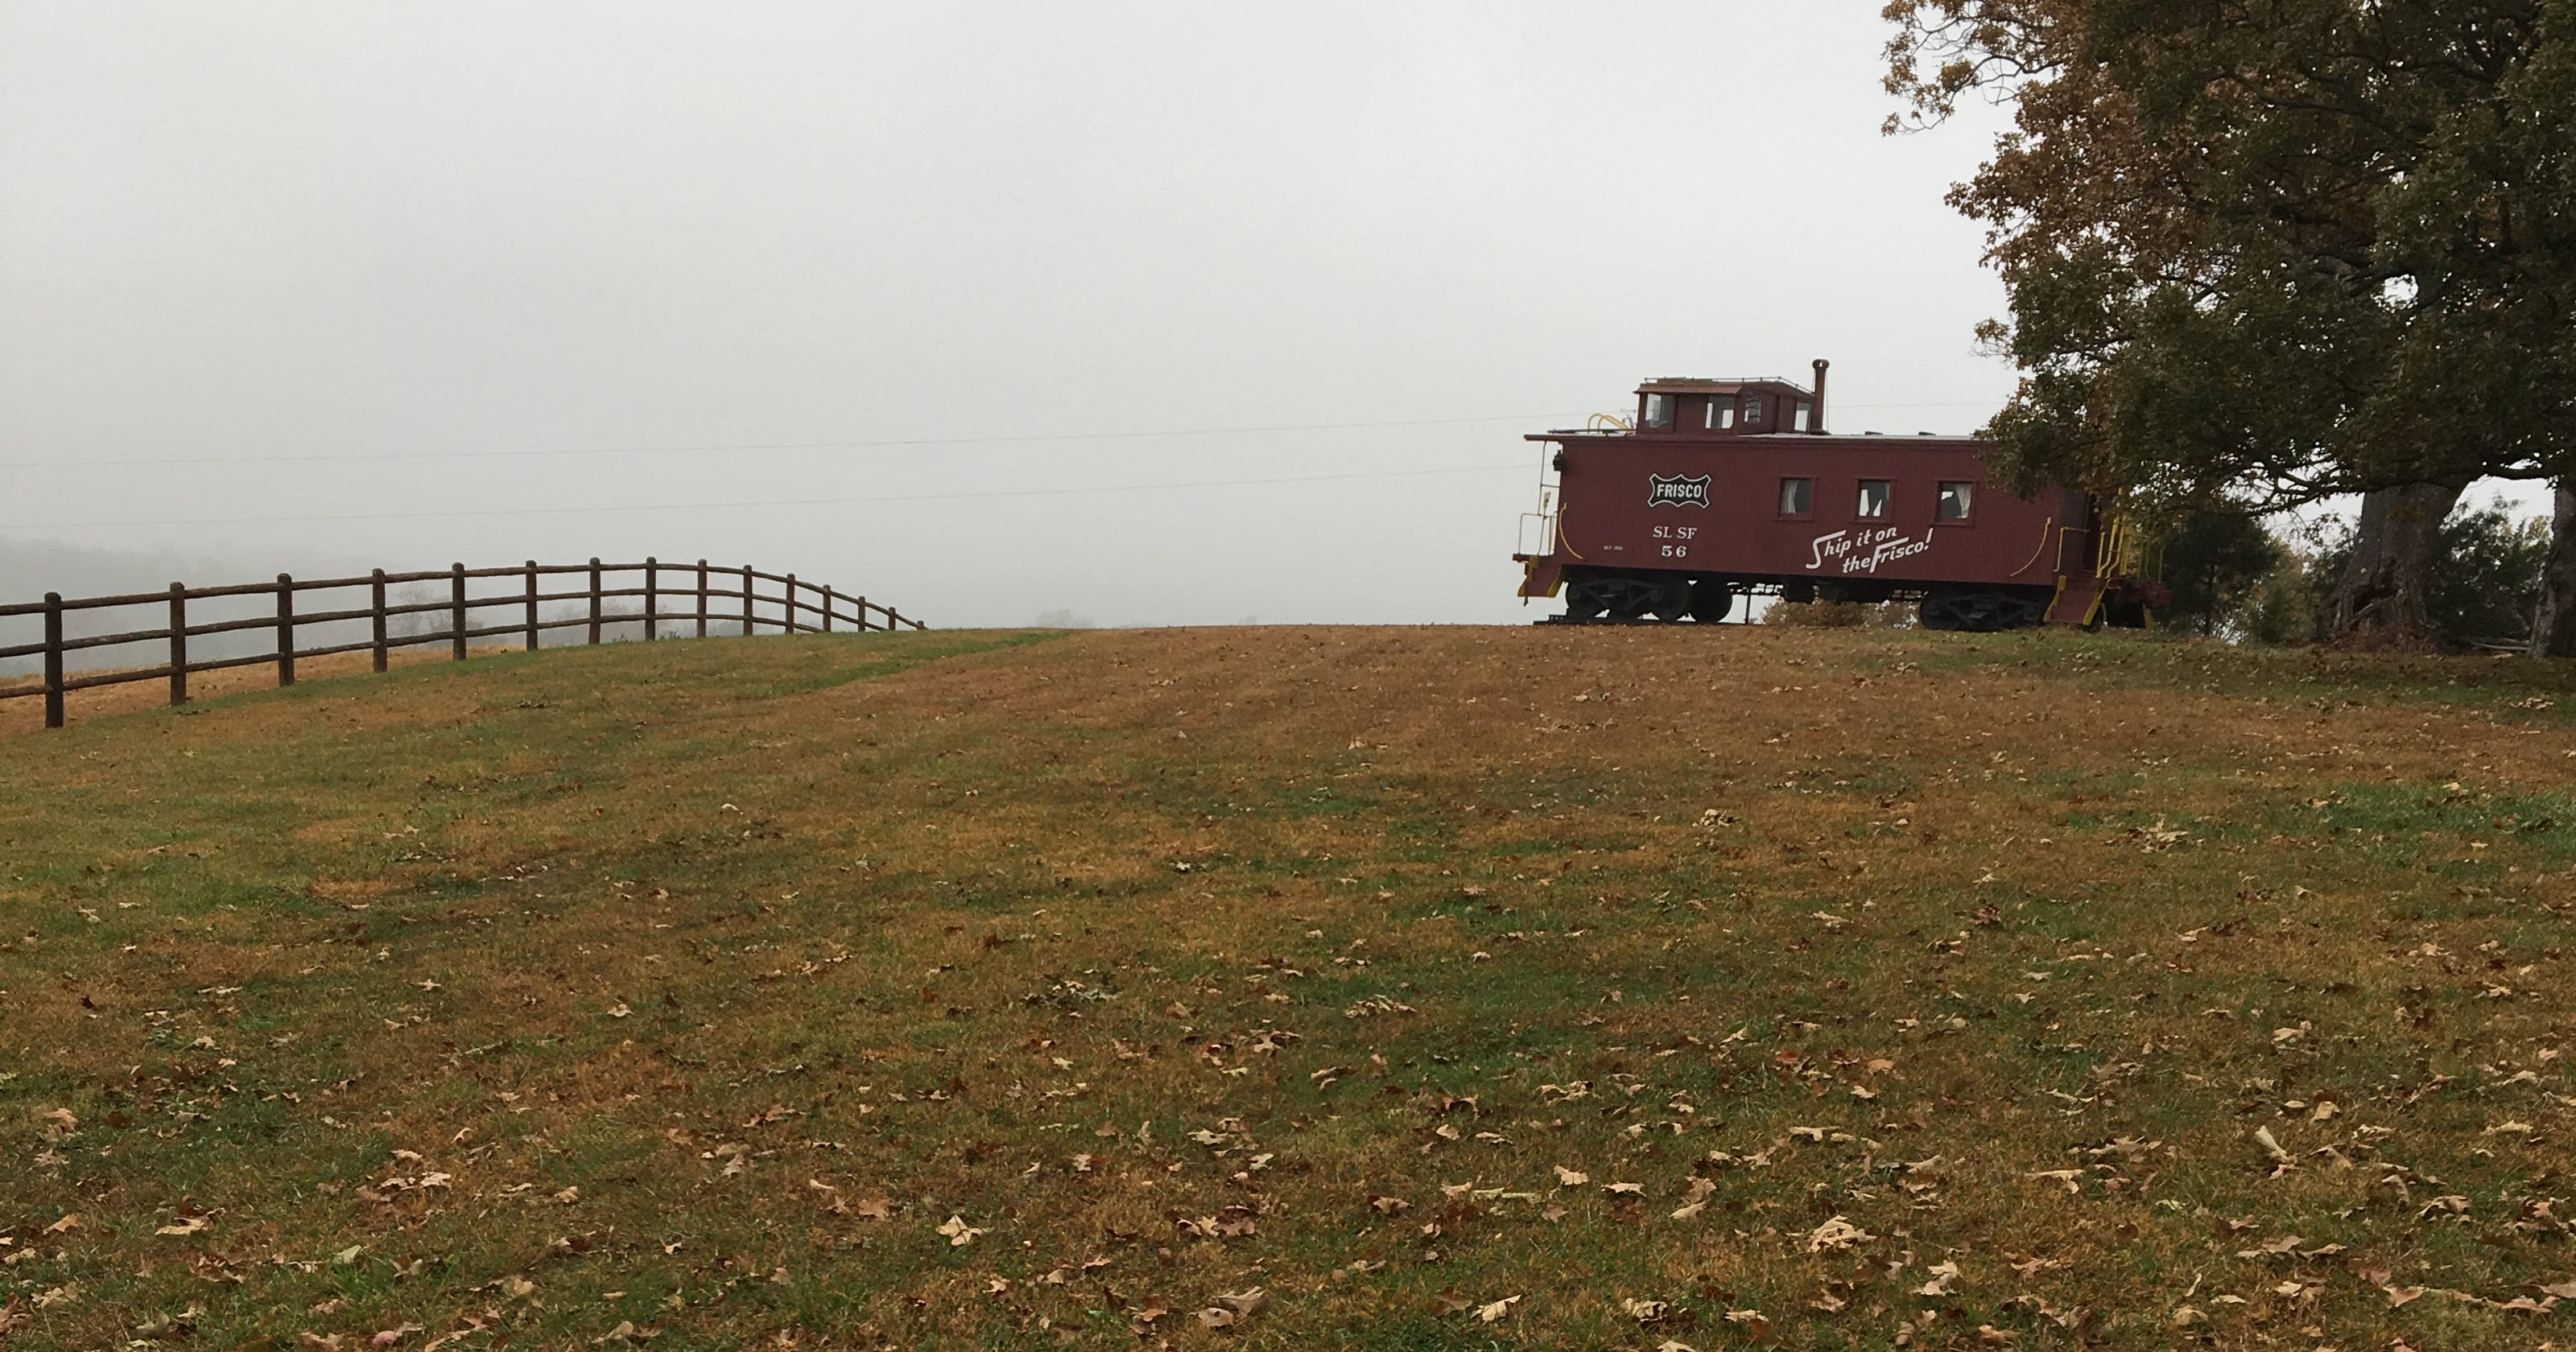 Frisco Railroad caboose on hill might involve Willie Nelson